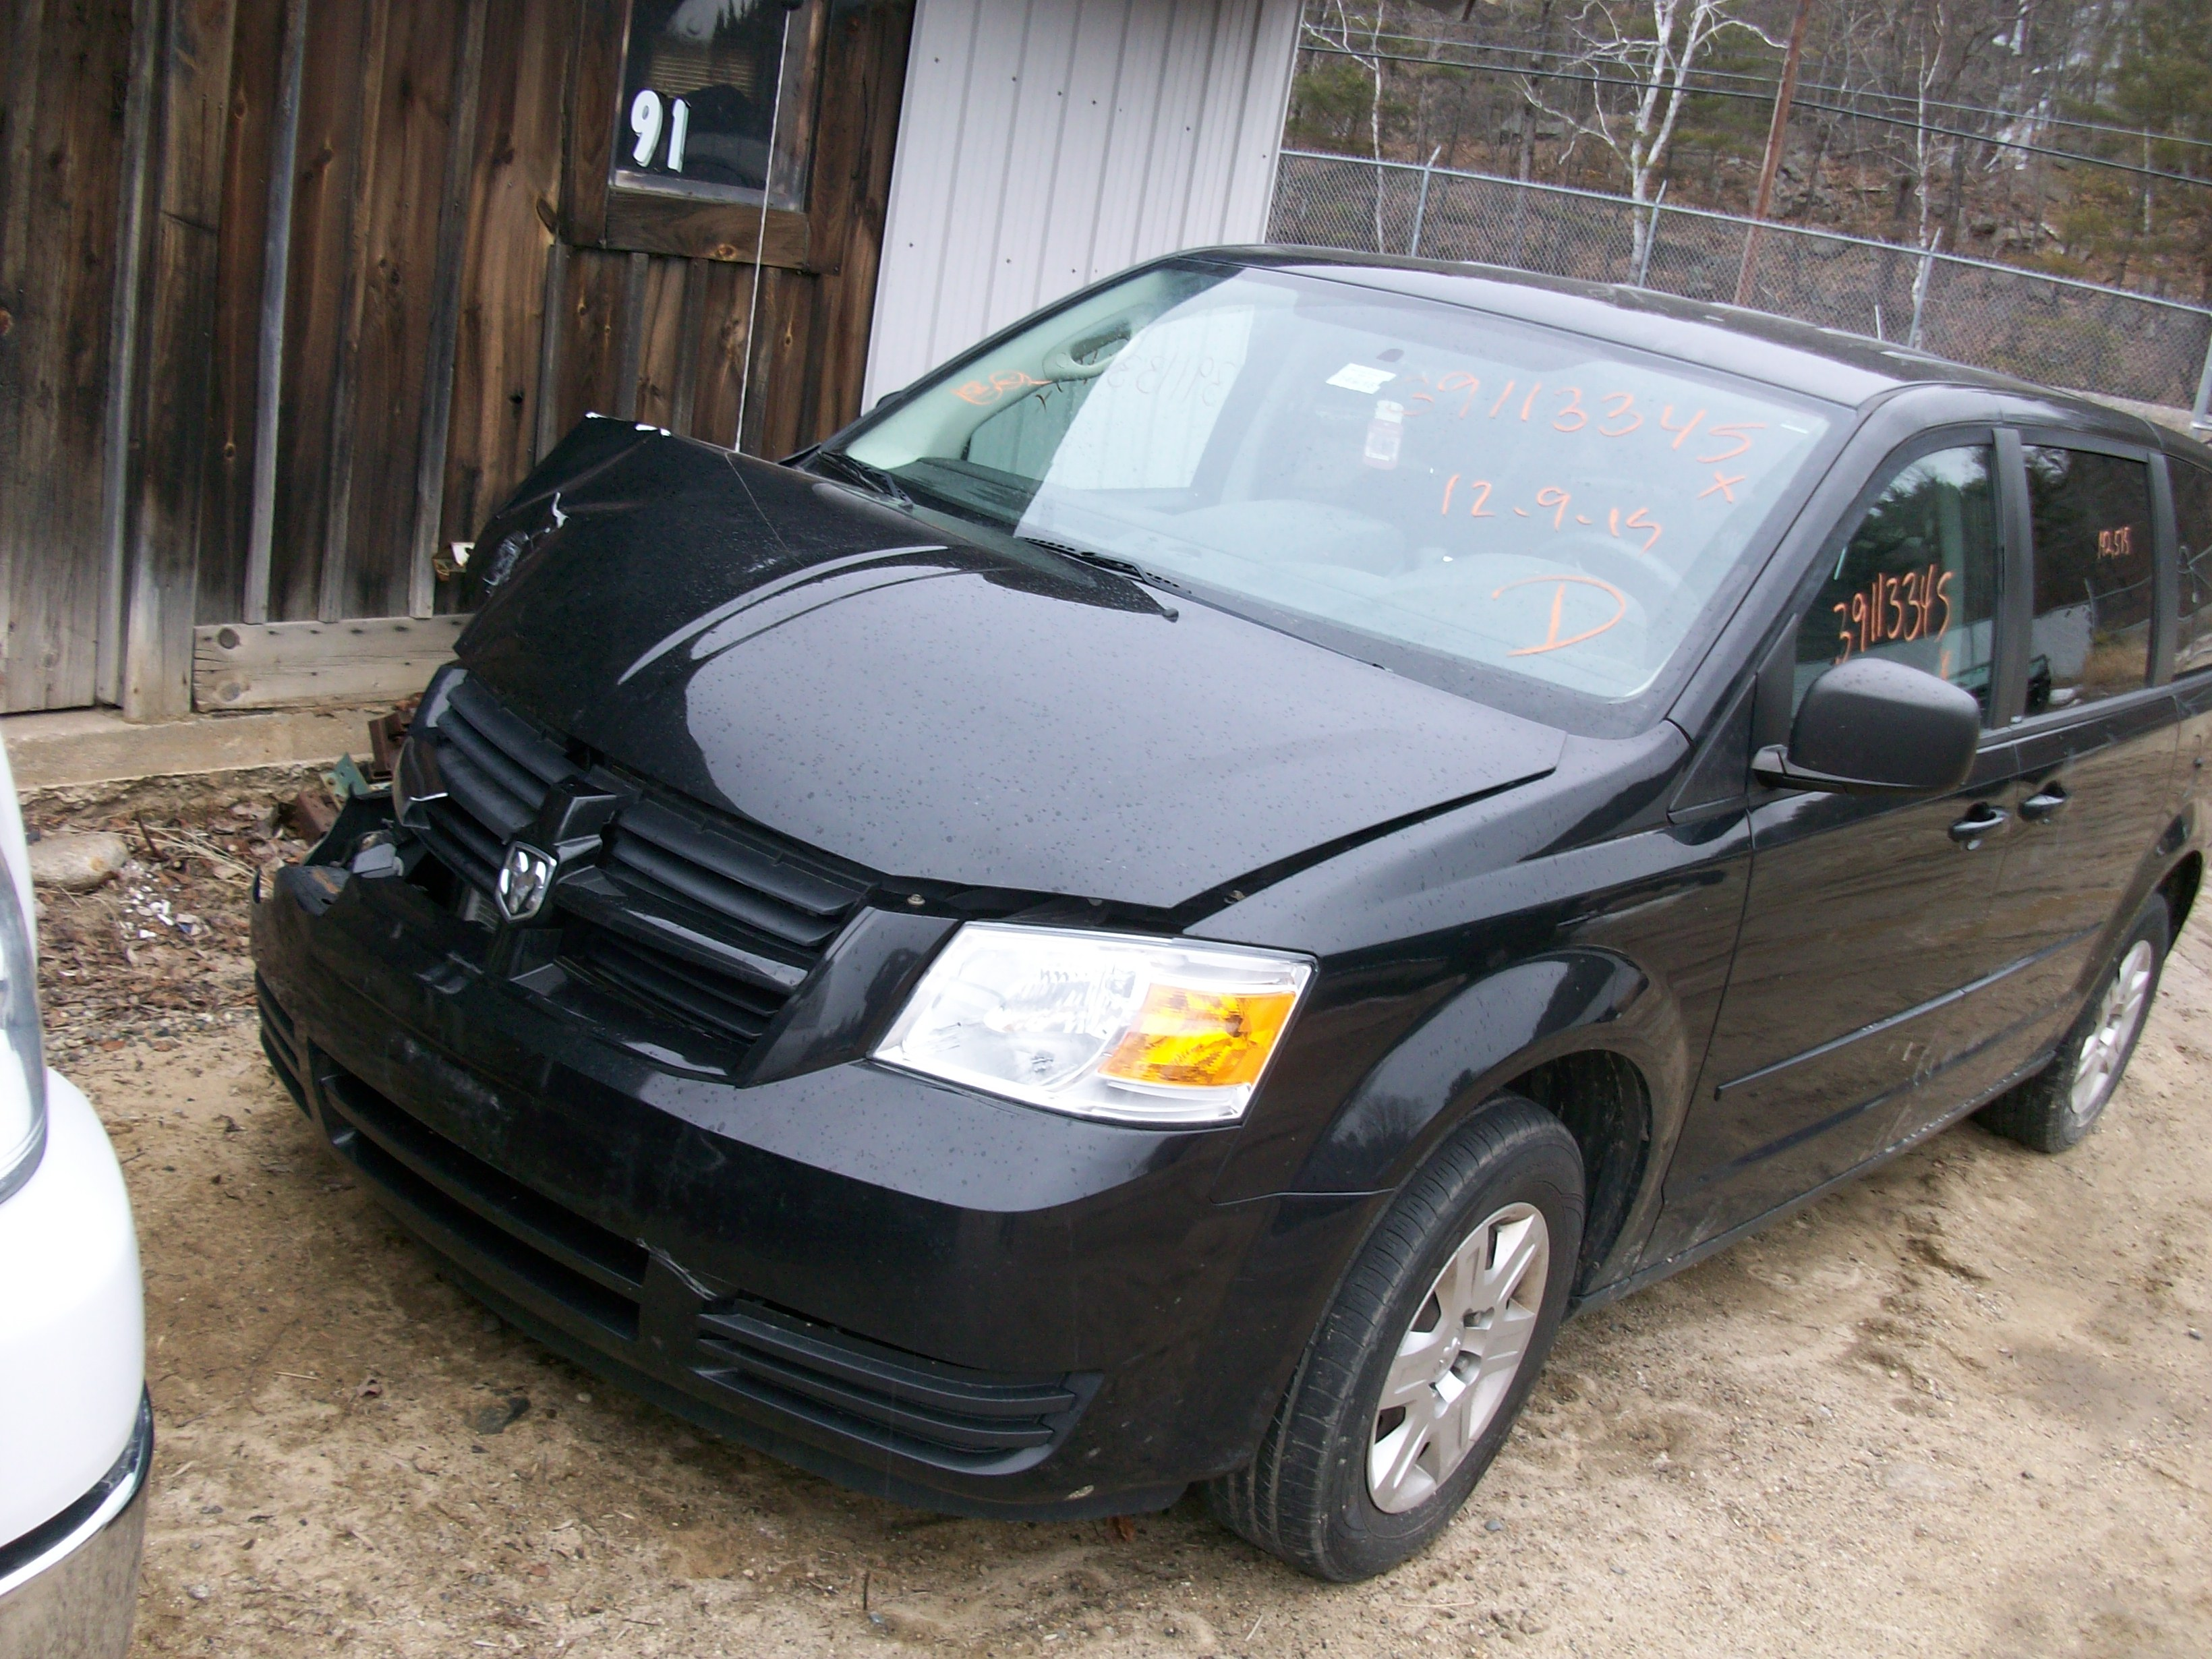 Lashins auto salvage wide selection helpful service and priced 2006 mini cooper s super charged 2010 grand caravan plymouth fandeluxe Image collections